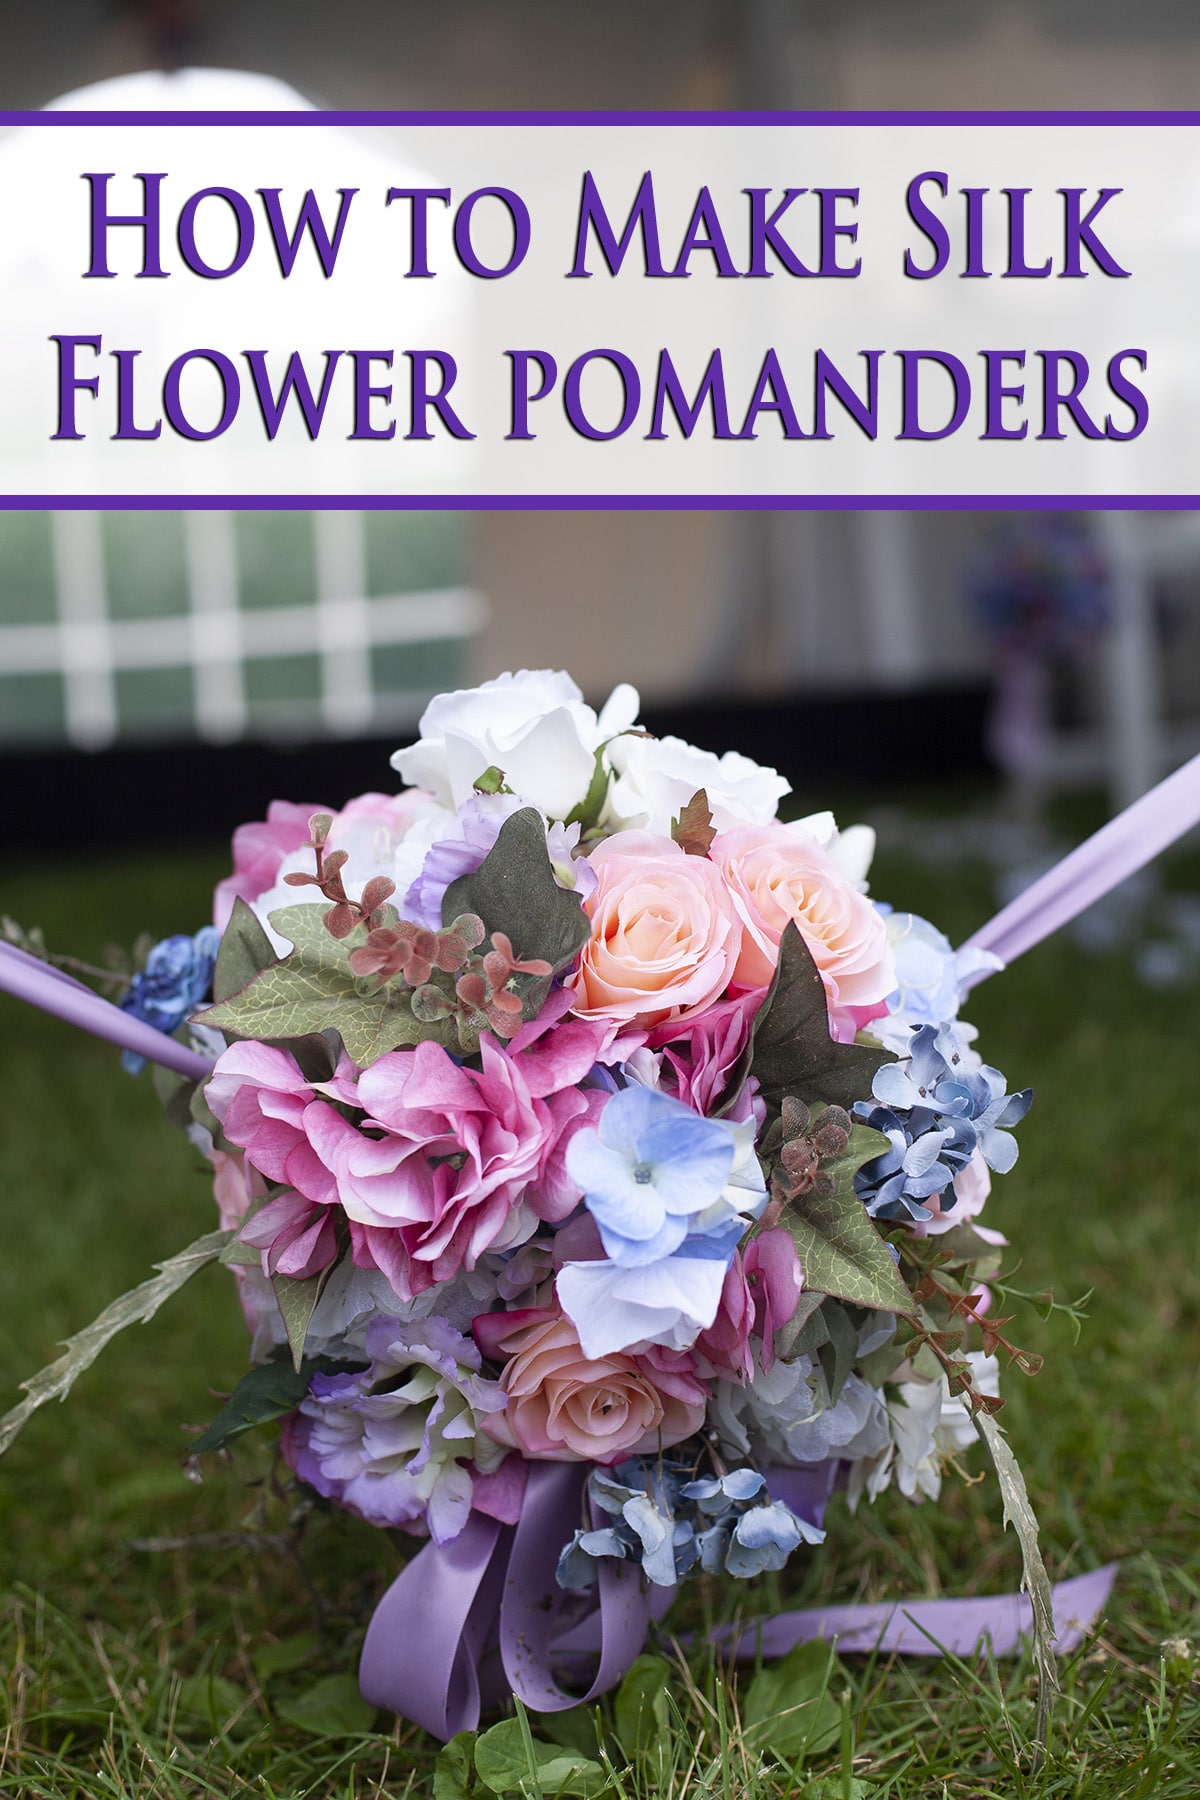 A pastel coloured floral arrangement, with How to Make Silk Flower Pomanders in purple text overlay.